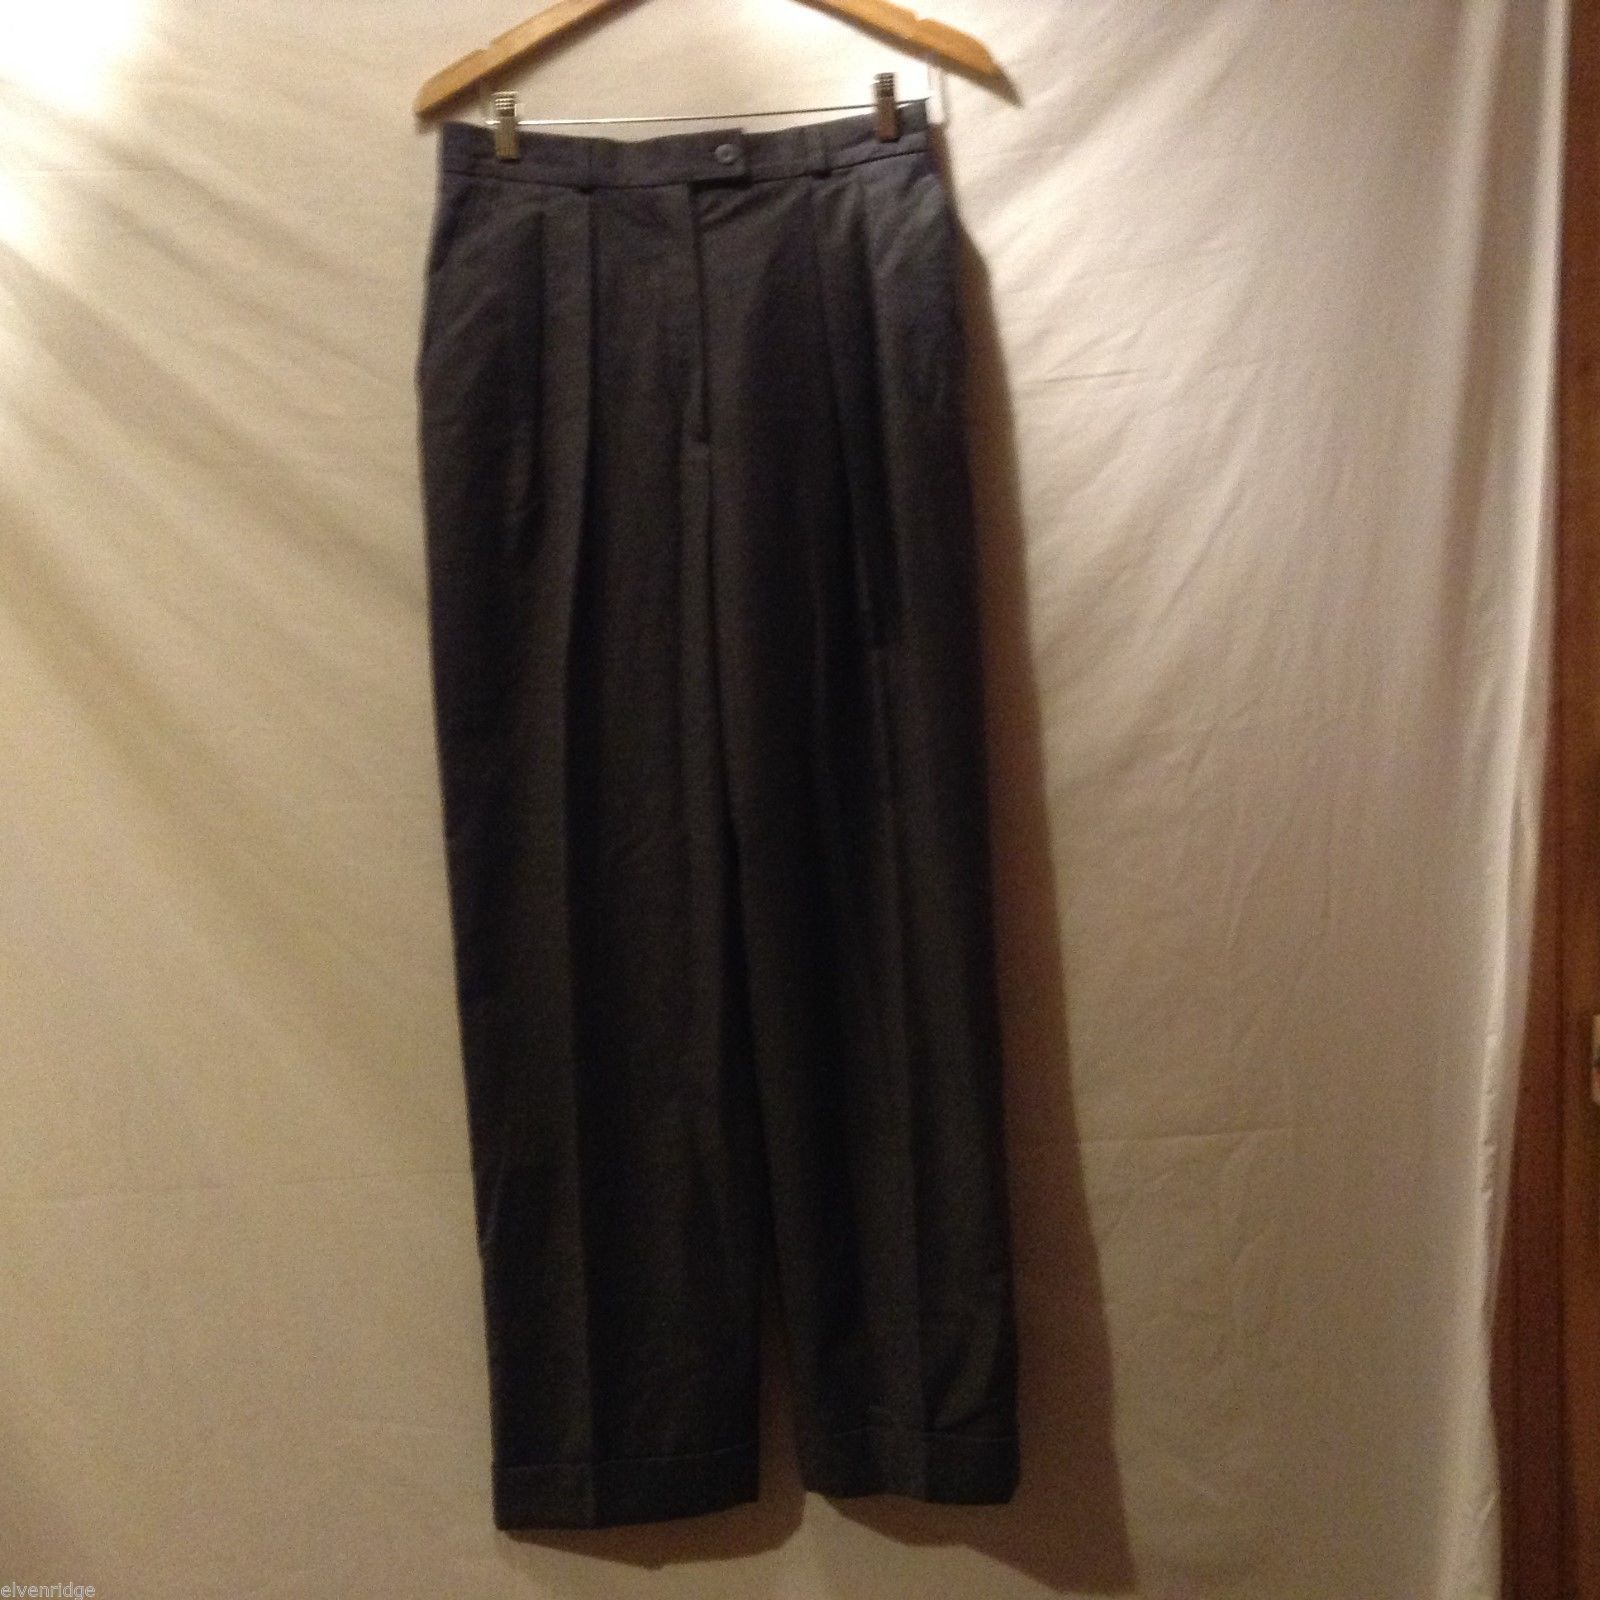 Kashmir & Wool Mens Gray Dress Pants, Size 10